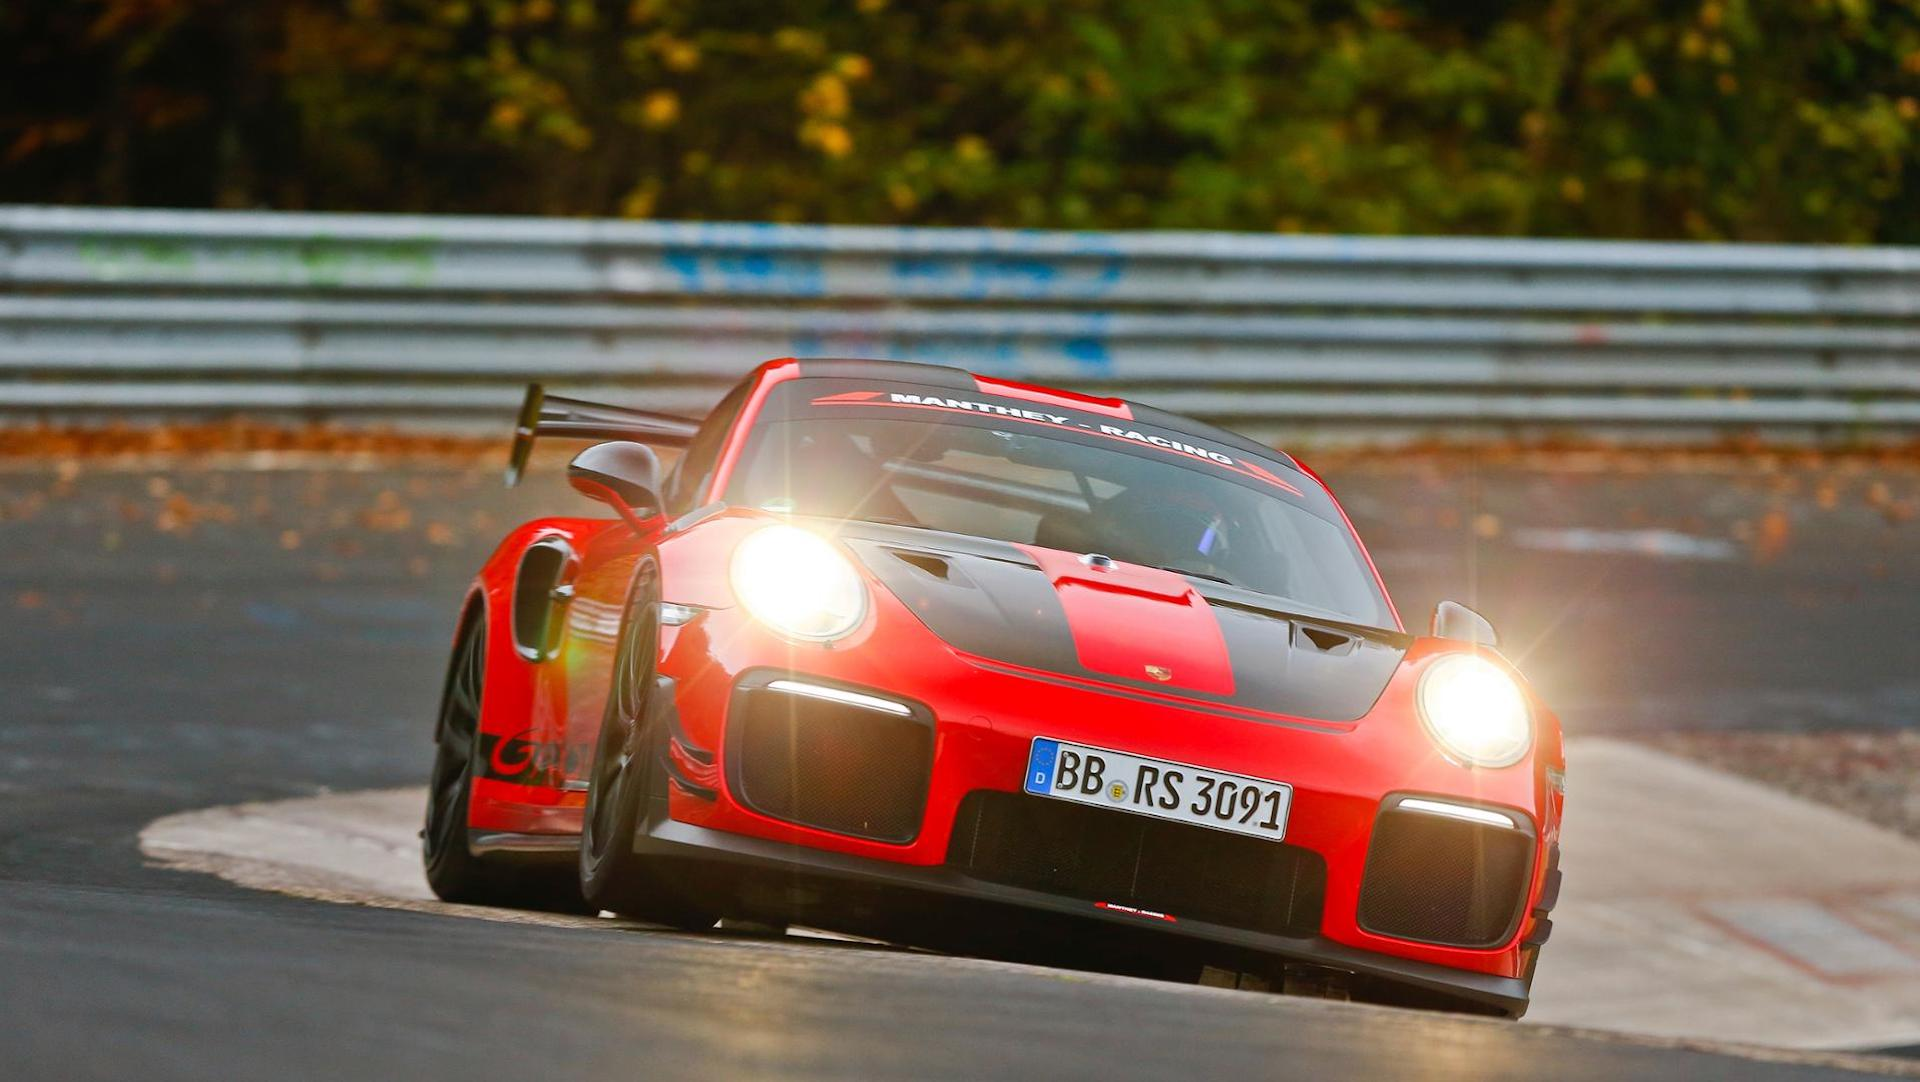 Porsche Sets 6 40 3 Nürburgring Record With Modified Street Legal 911 Gt2 Rs Mr